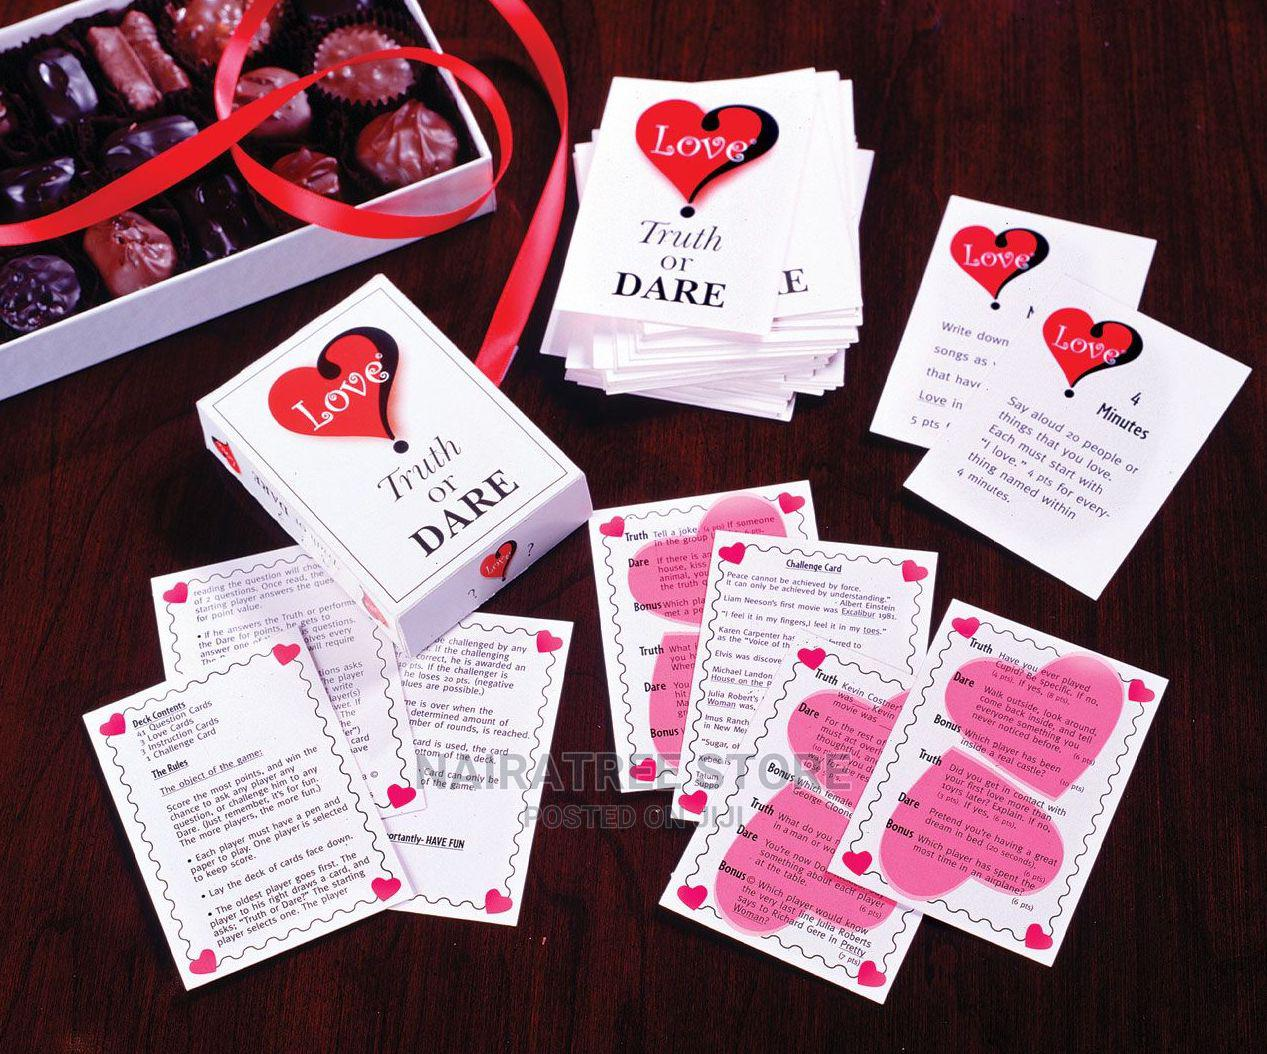 Love Truth or Dare Card Game Thats All About Love   Books & Games for sale in Lekki, Lagos State, Nigeria